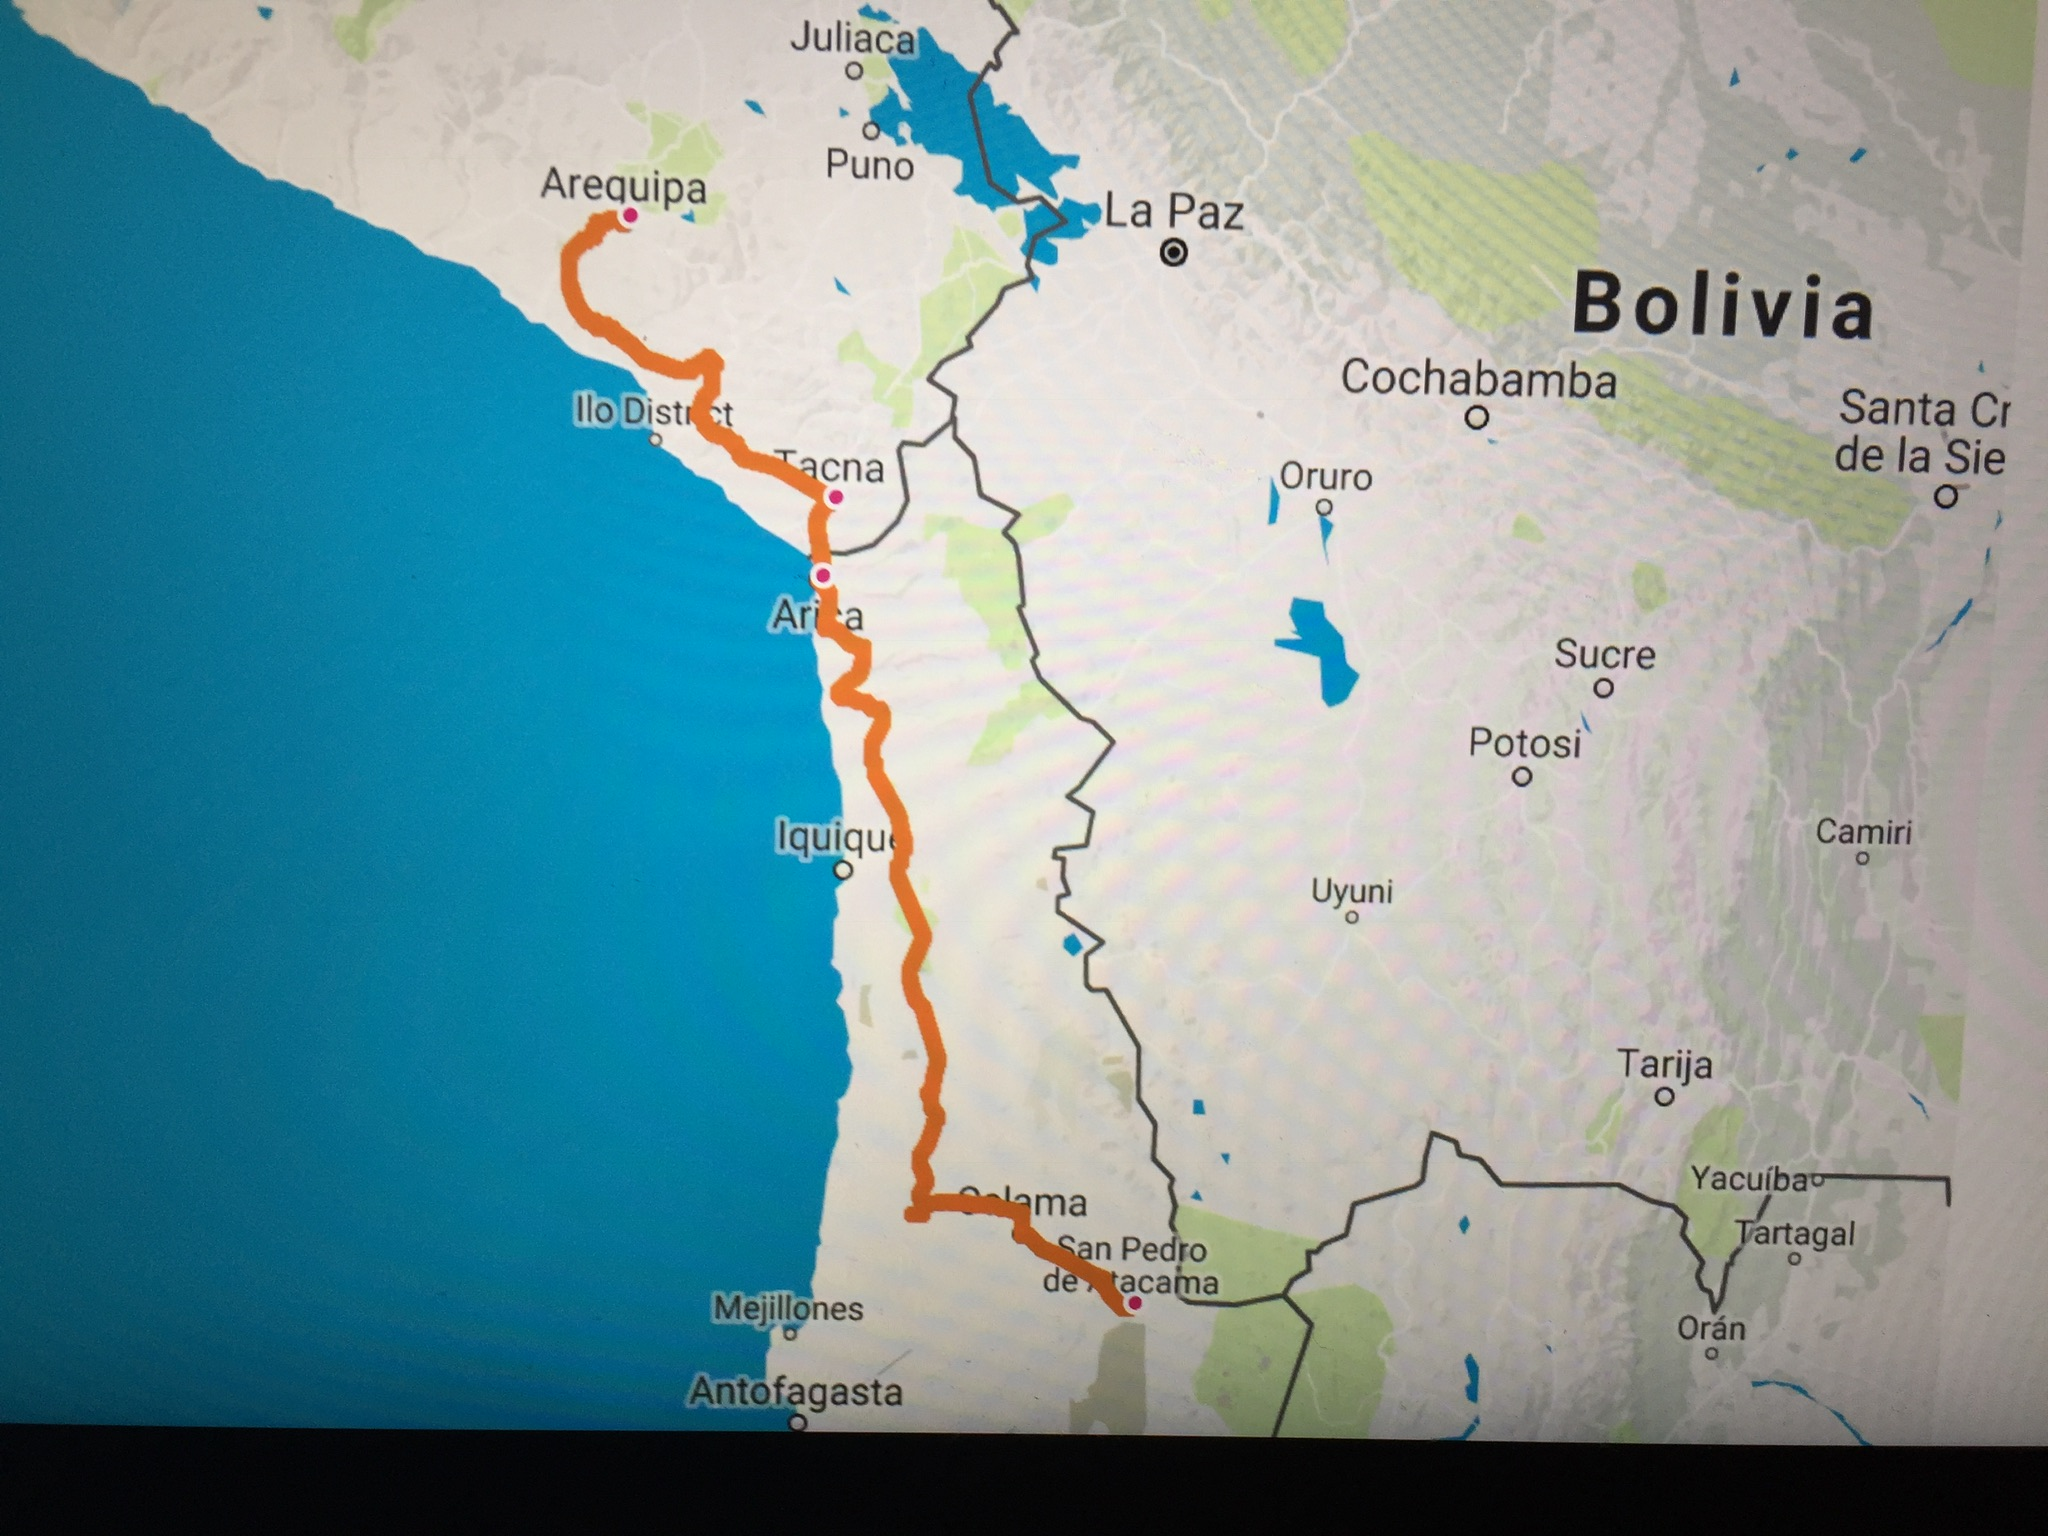 The route to Chile